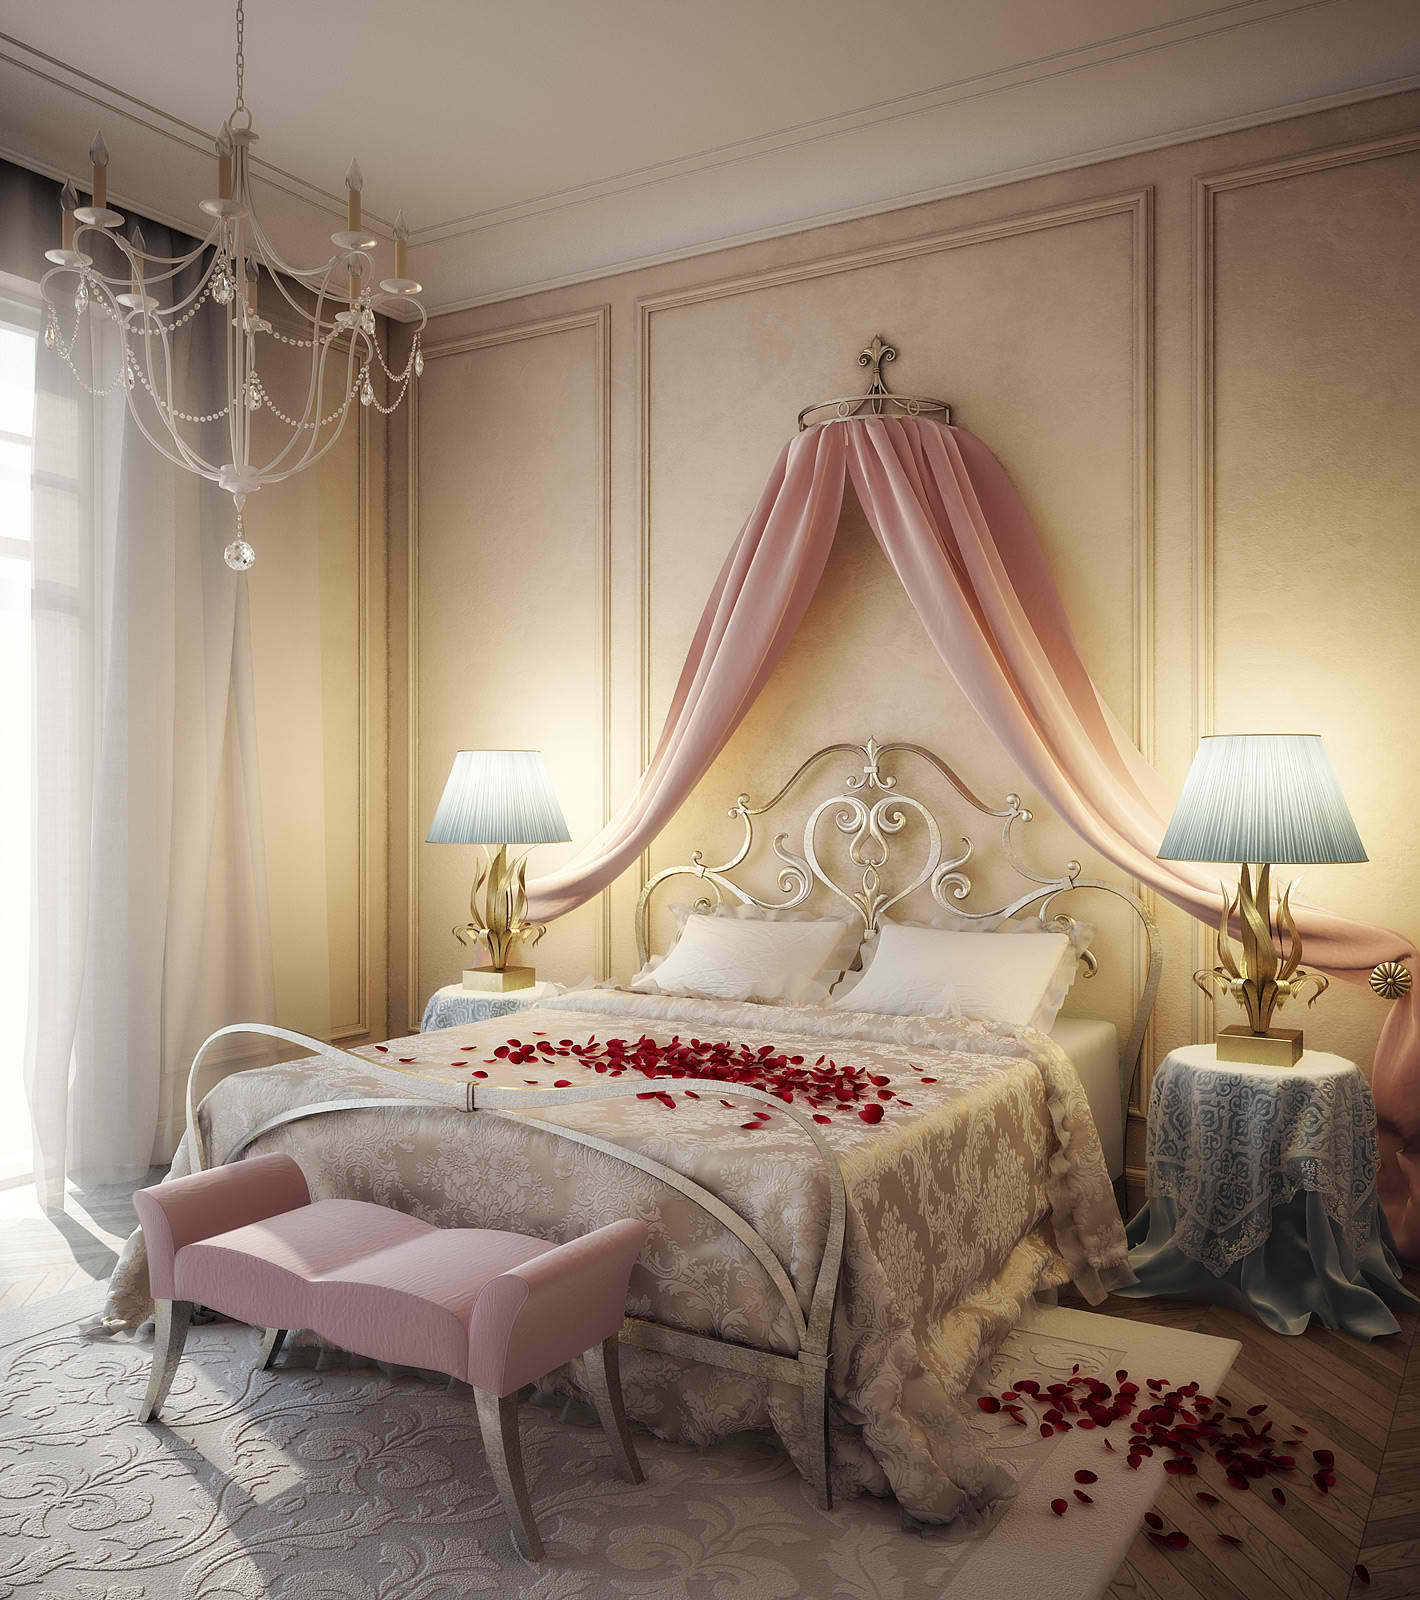 20 romantic bedroom ideas decoholic for Bedroom decorations ideas